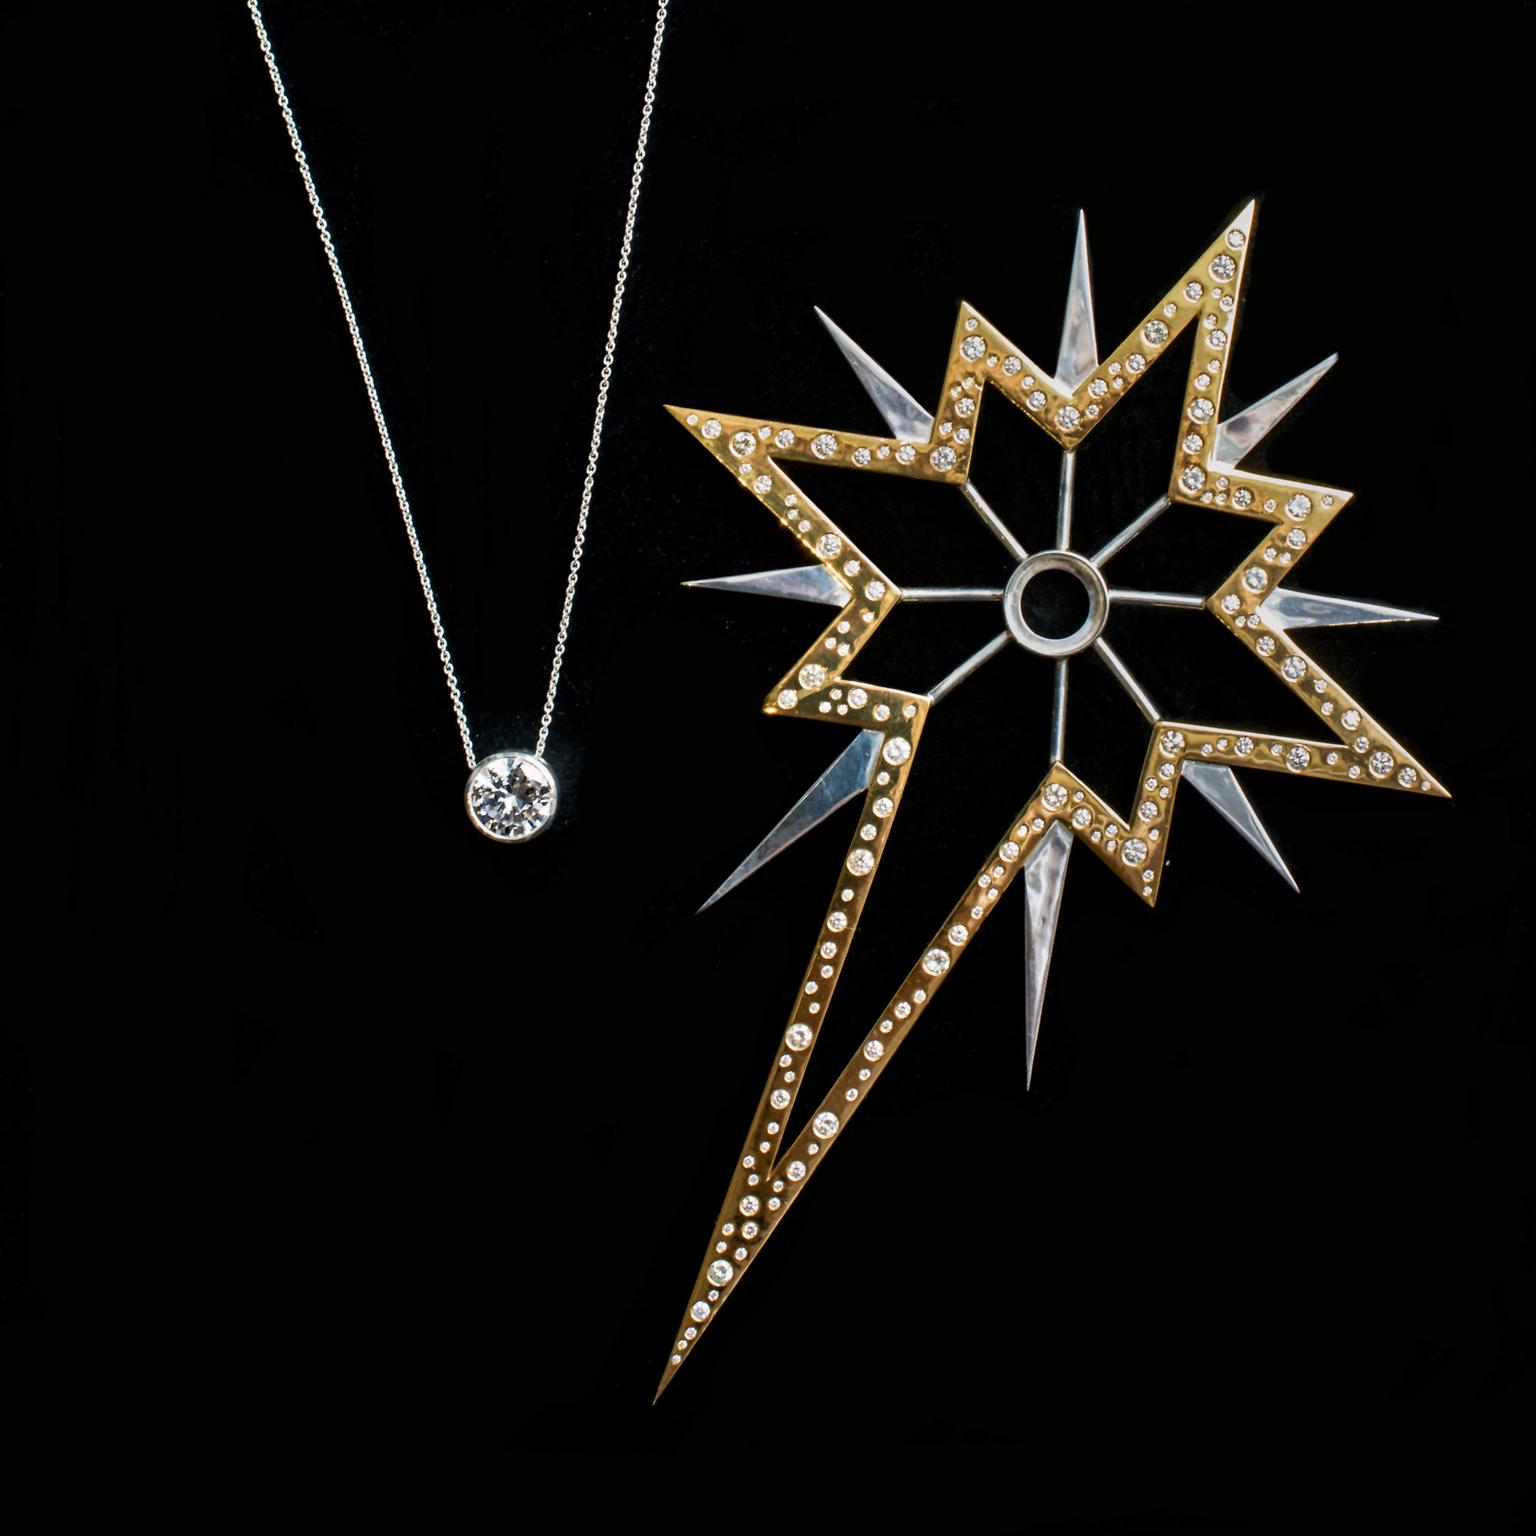 77 Diamonds Christmas star with diamond necklace